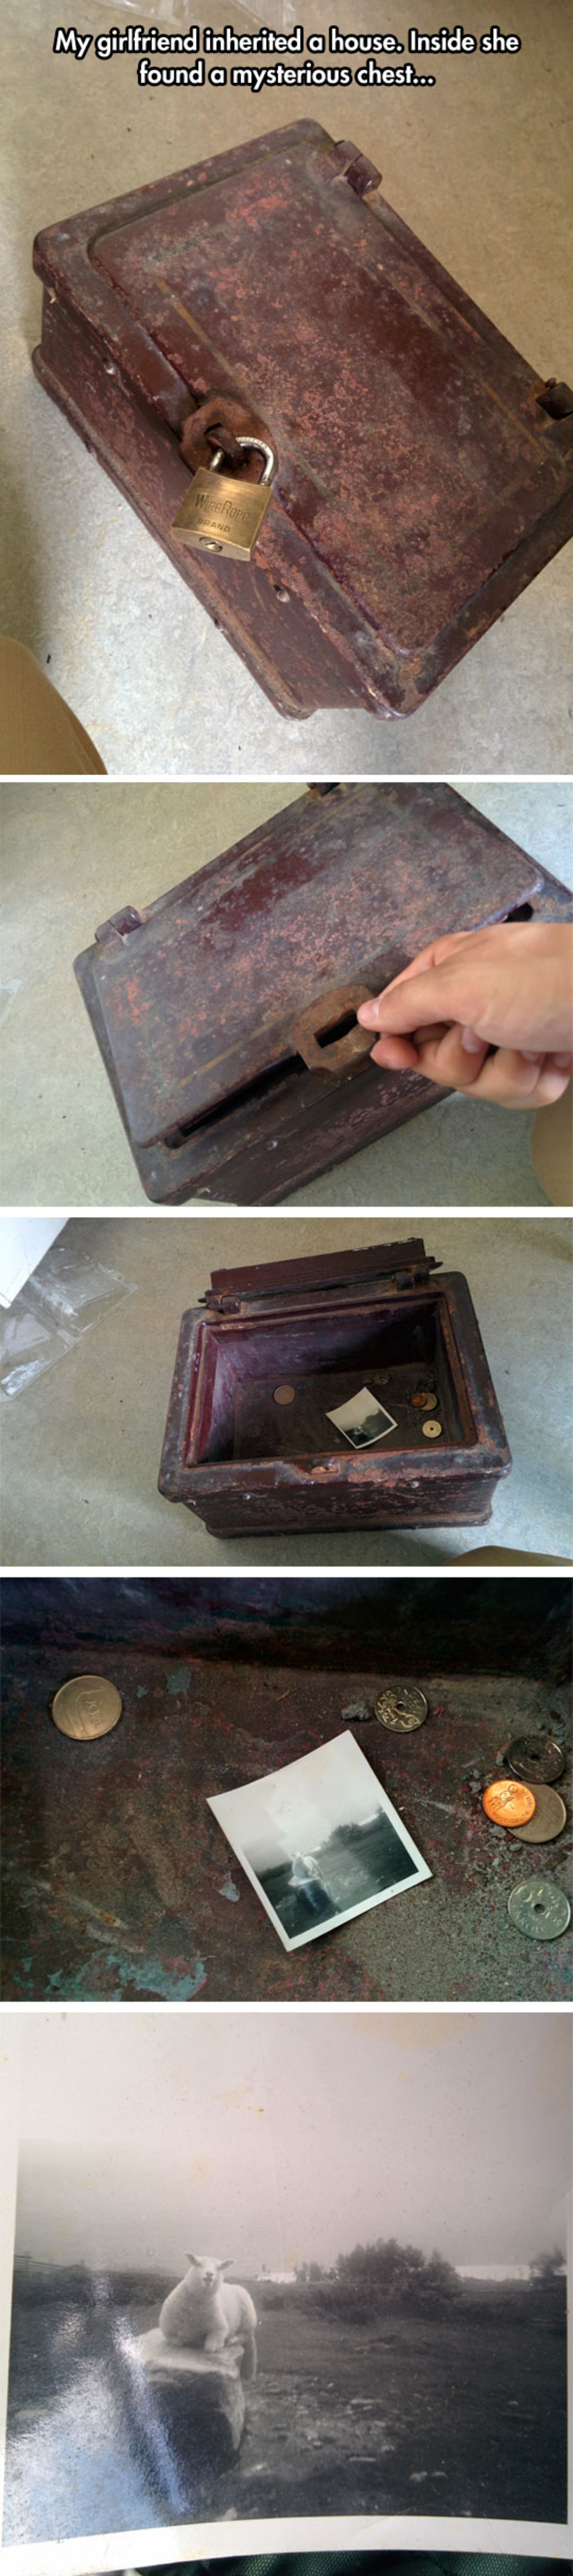 Real life treasure chest. .. Someone stashed some 1920's meme in there. Good find